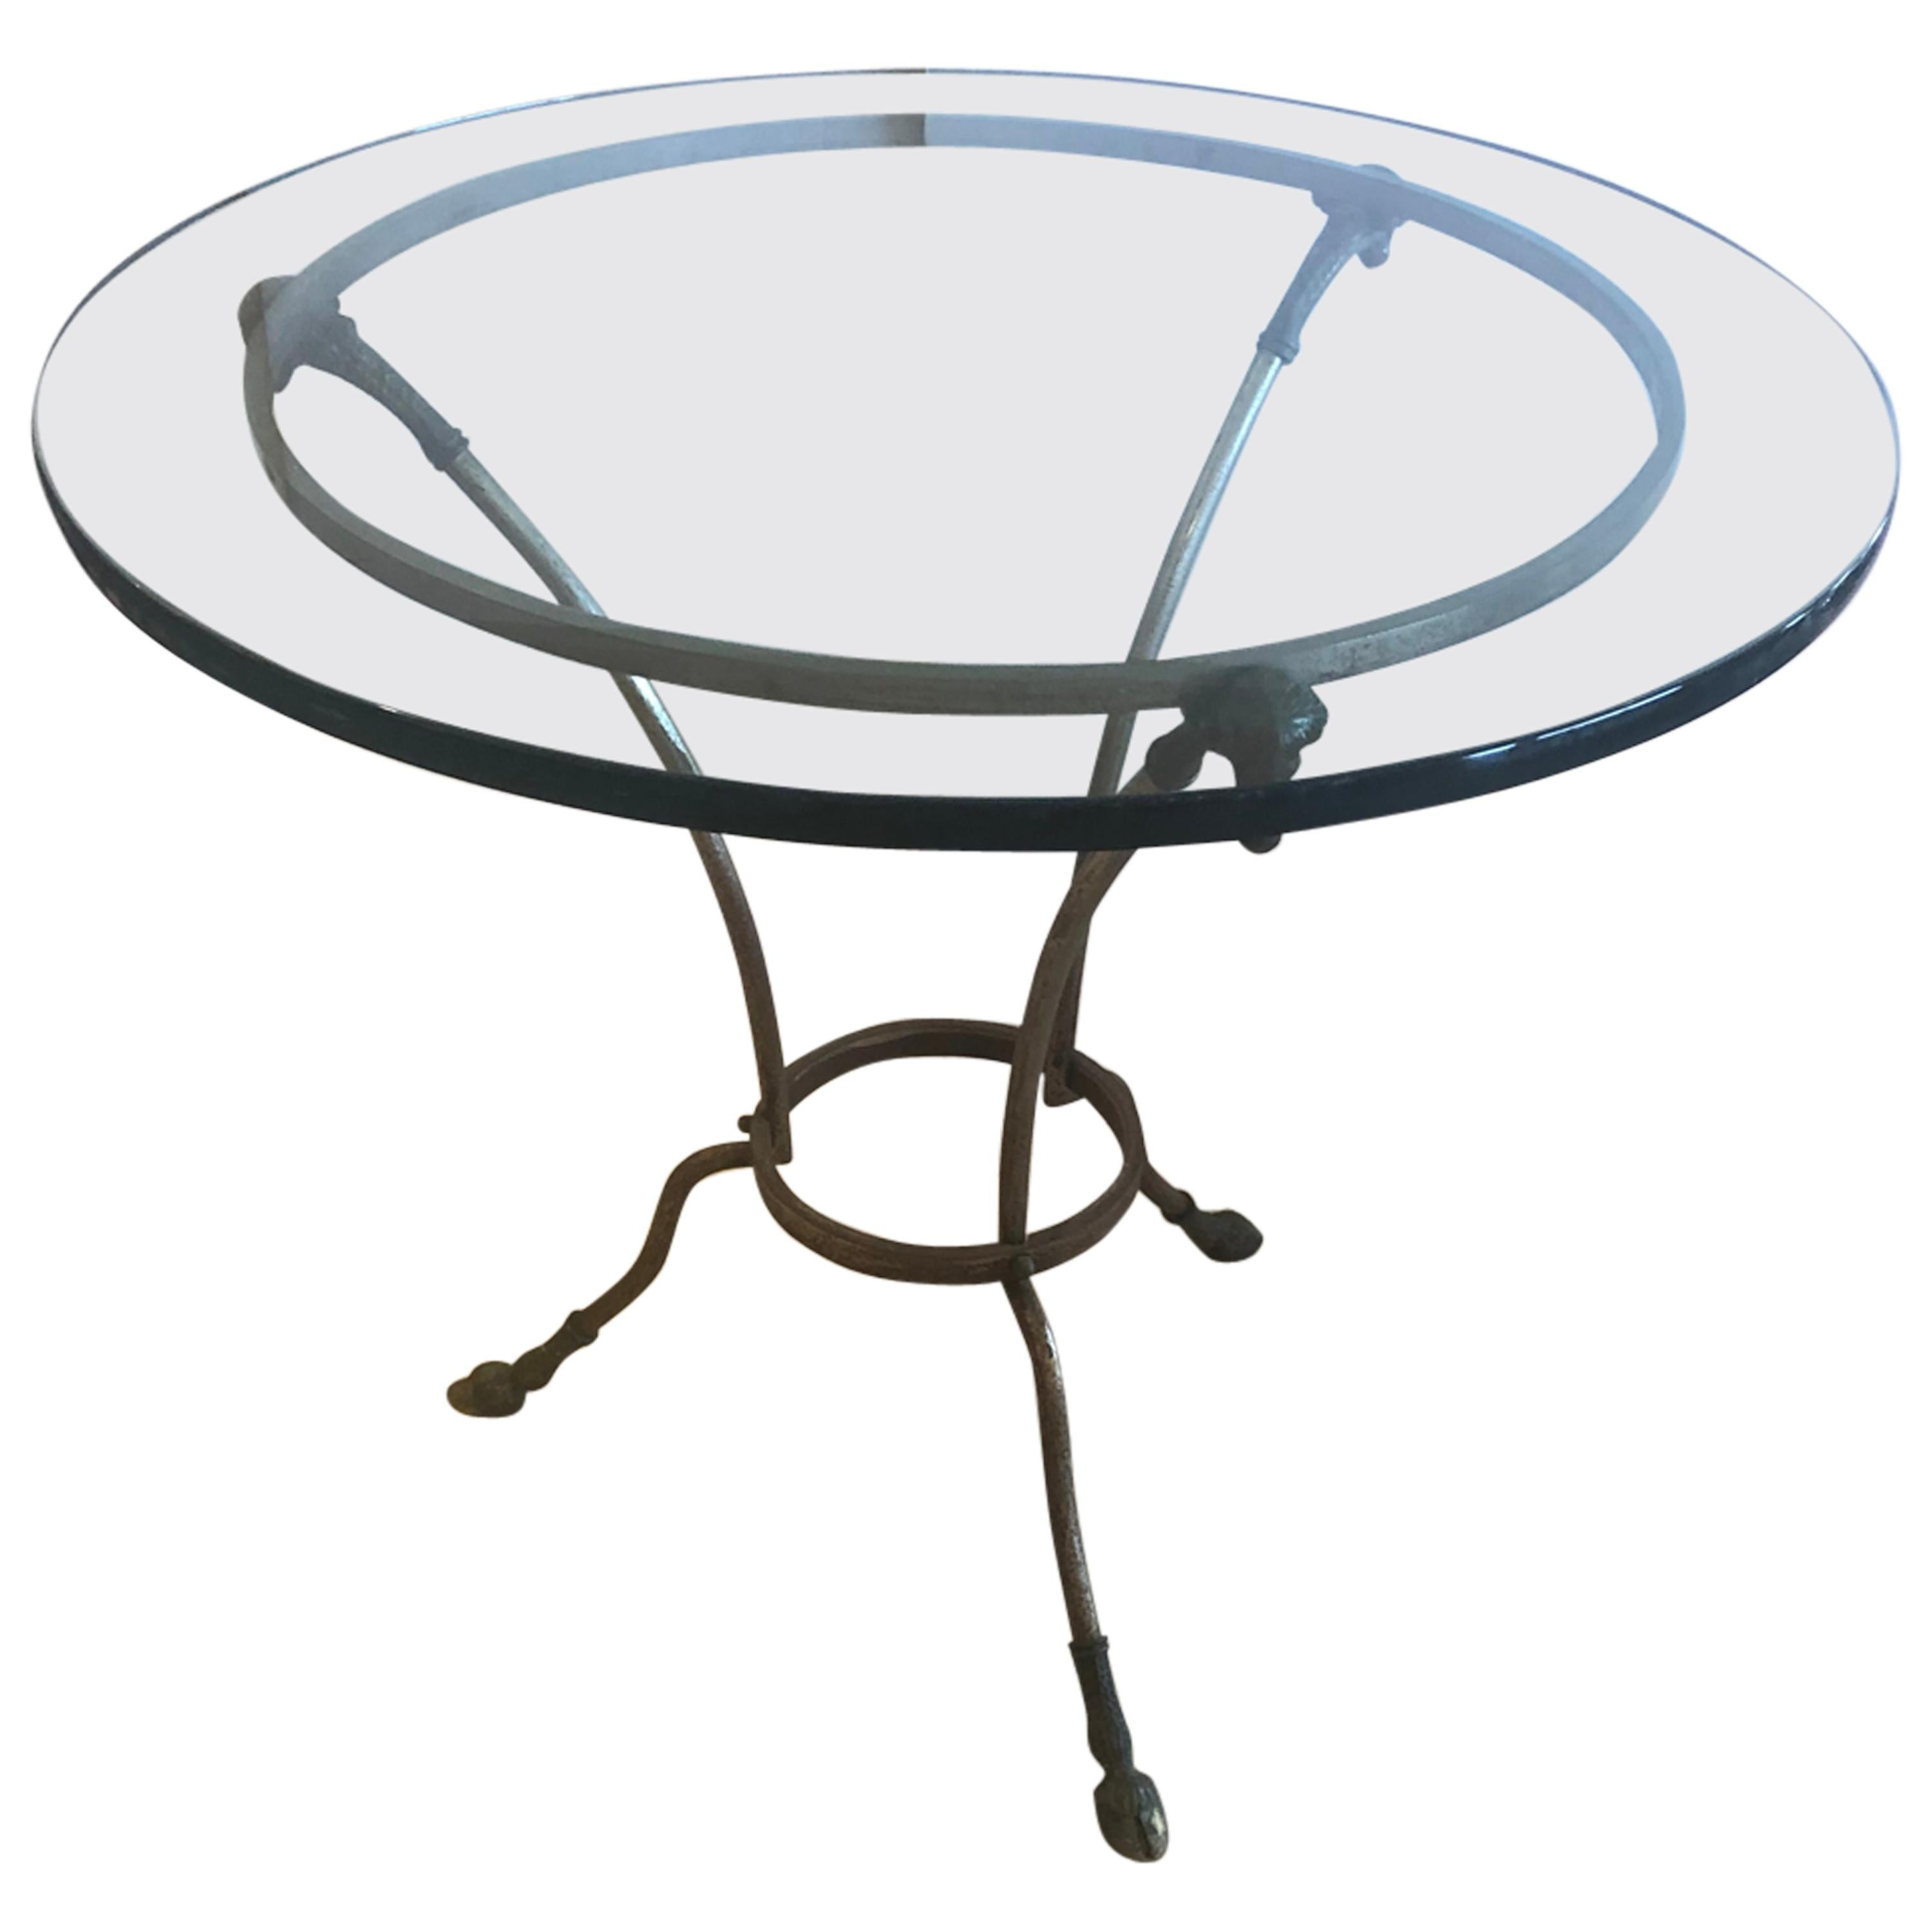 Elegant Round Maison Jansen French Steel and Bronze Side Table End Table